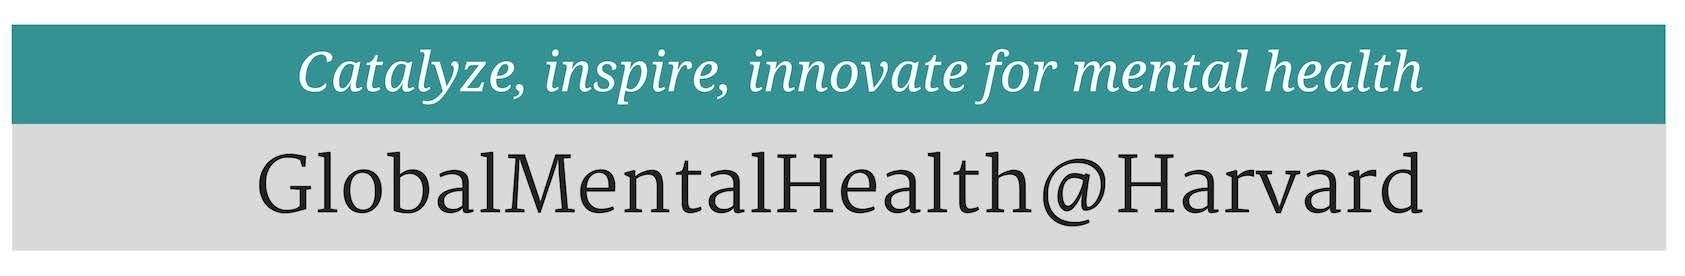 Catalyze, inspire, innovate for mental health